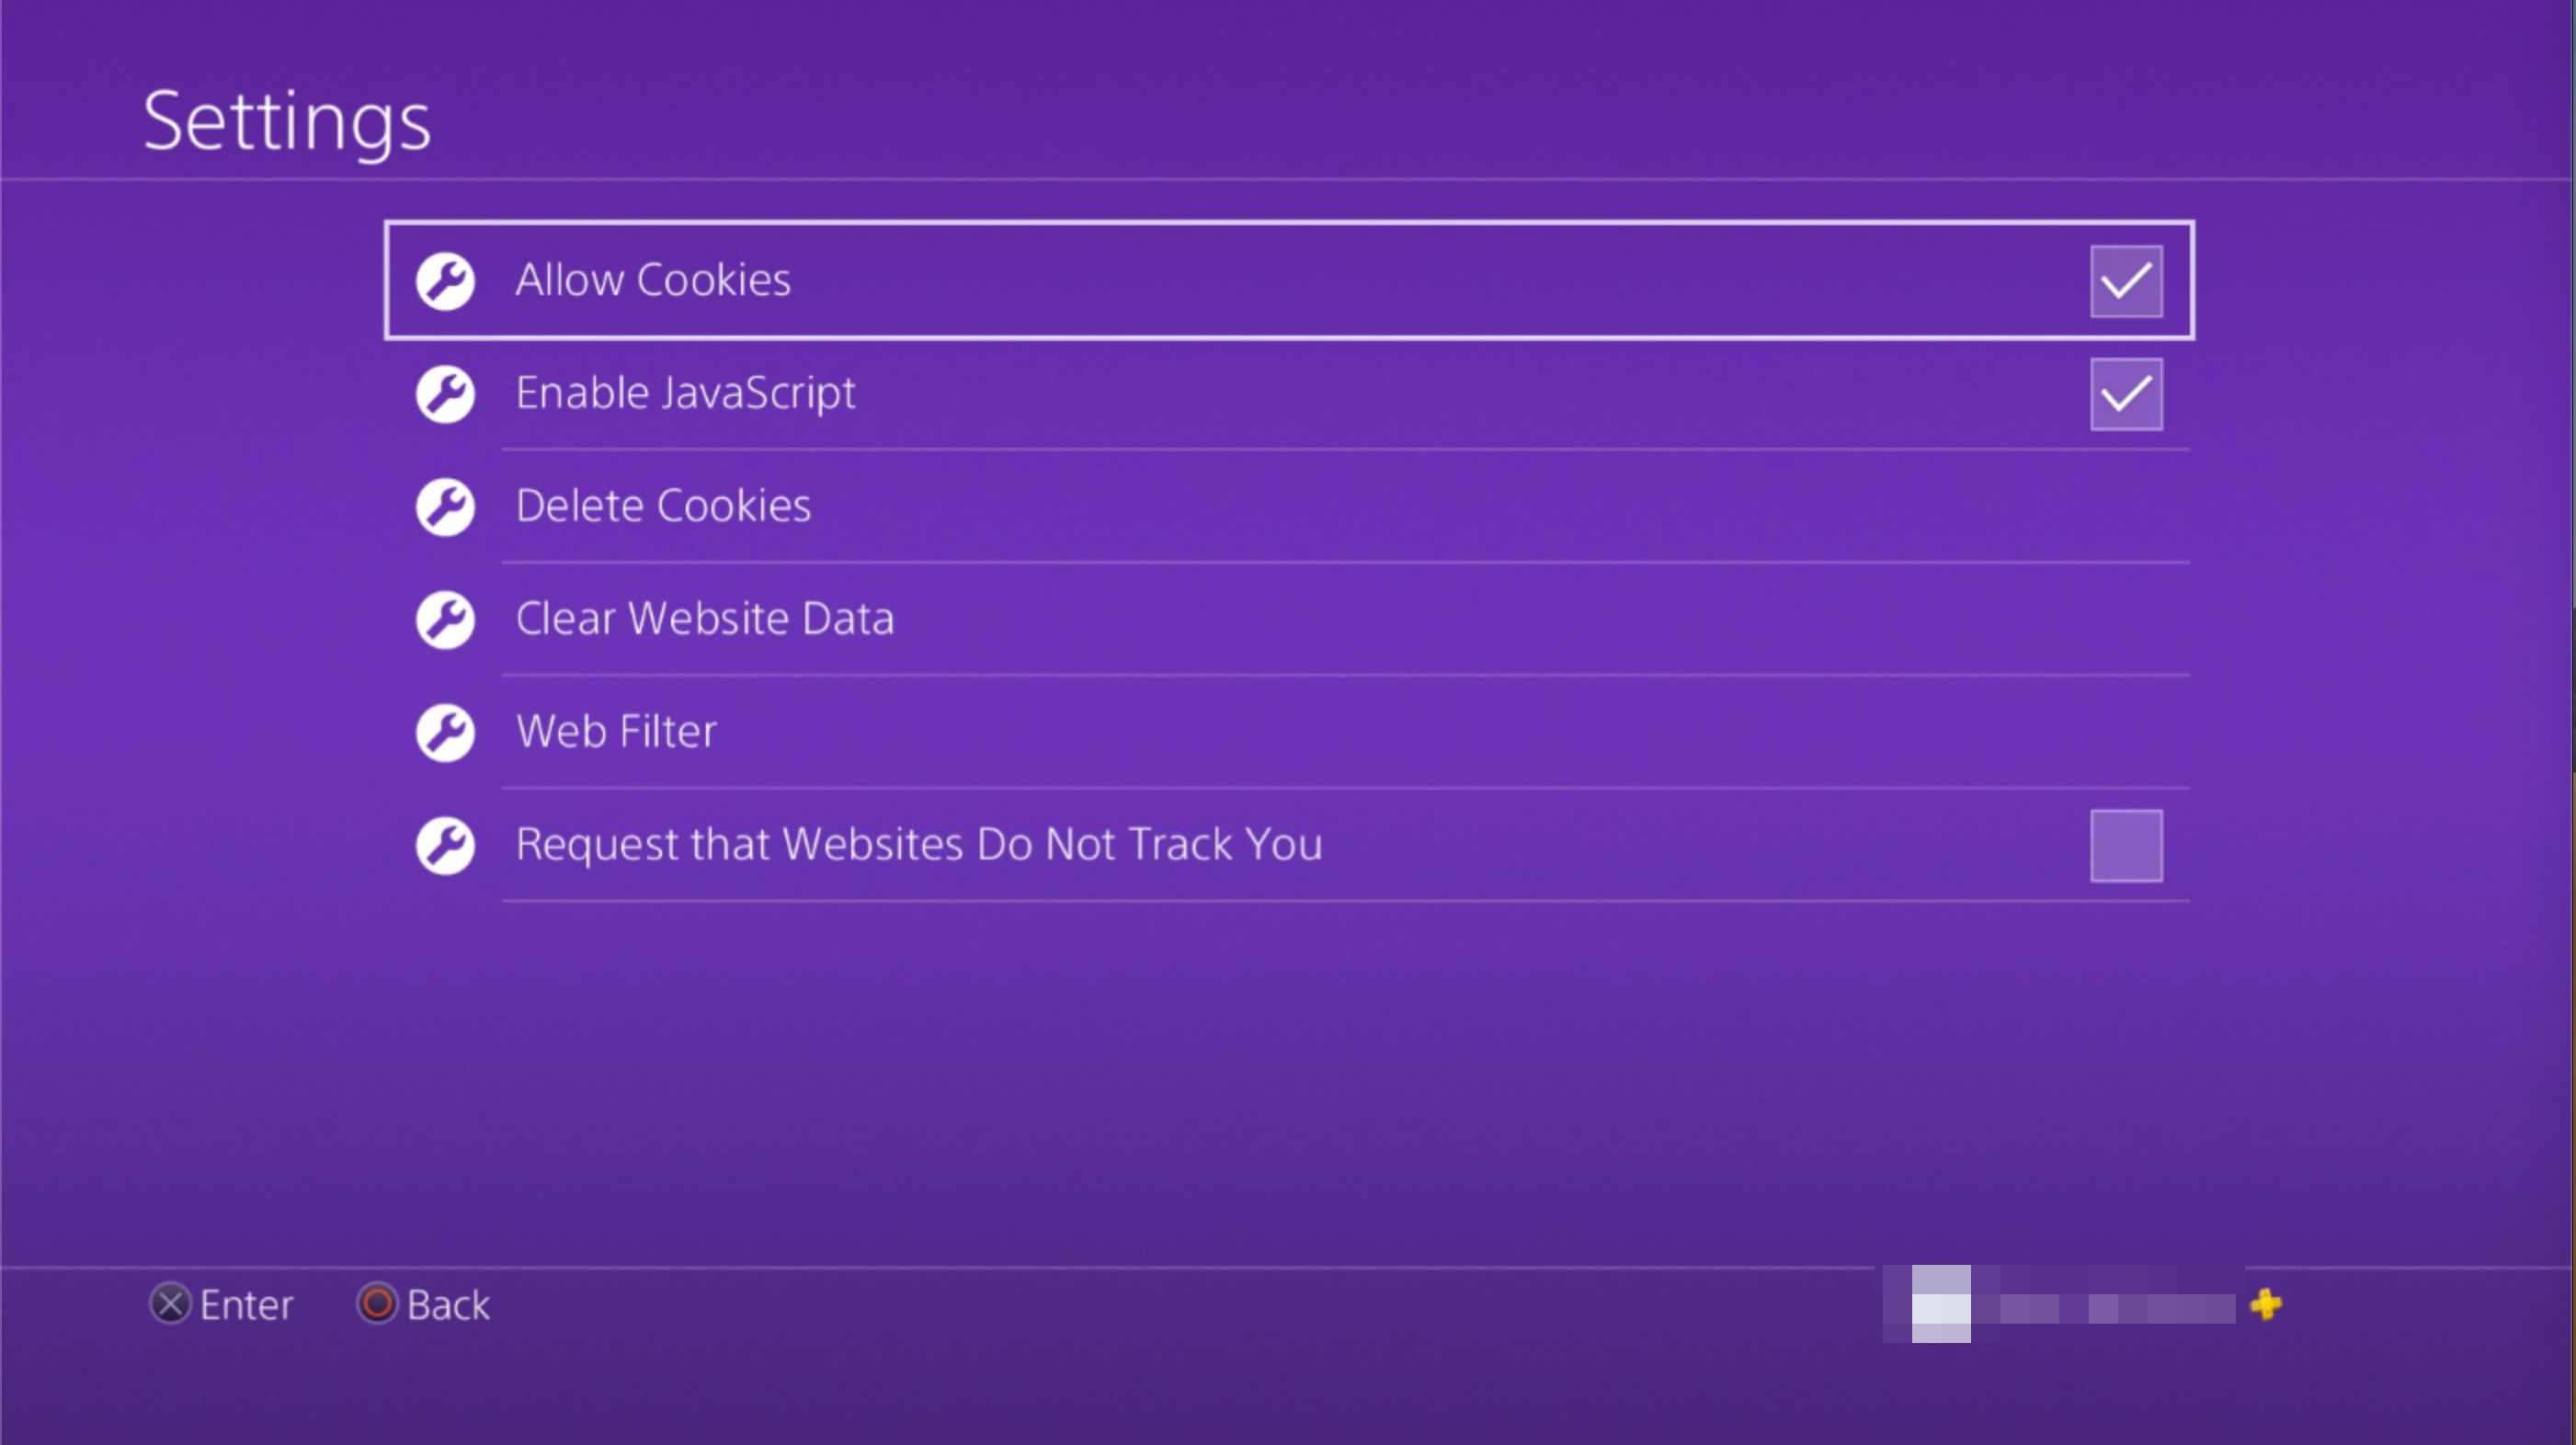 Allow Cookies option on PS4 browser settings